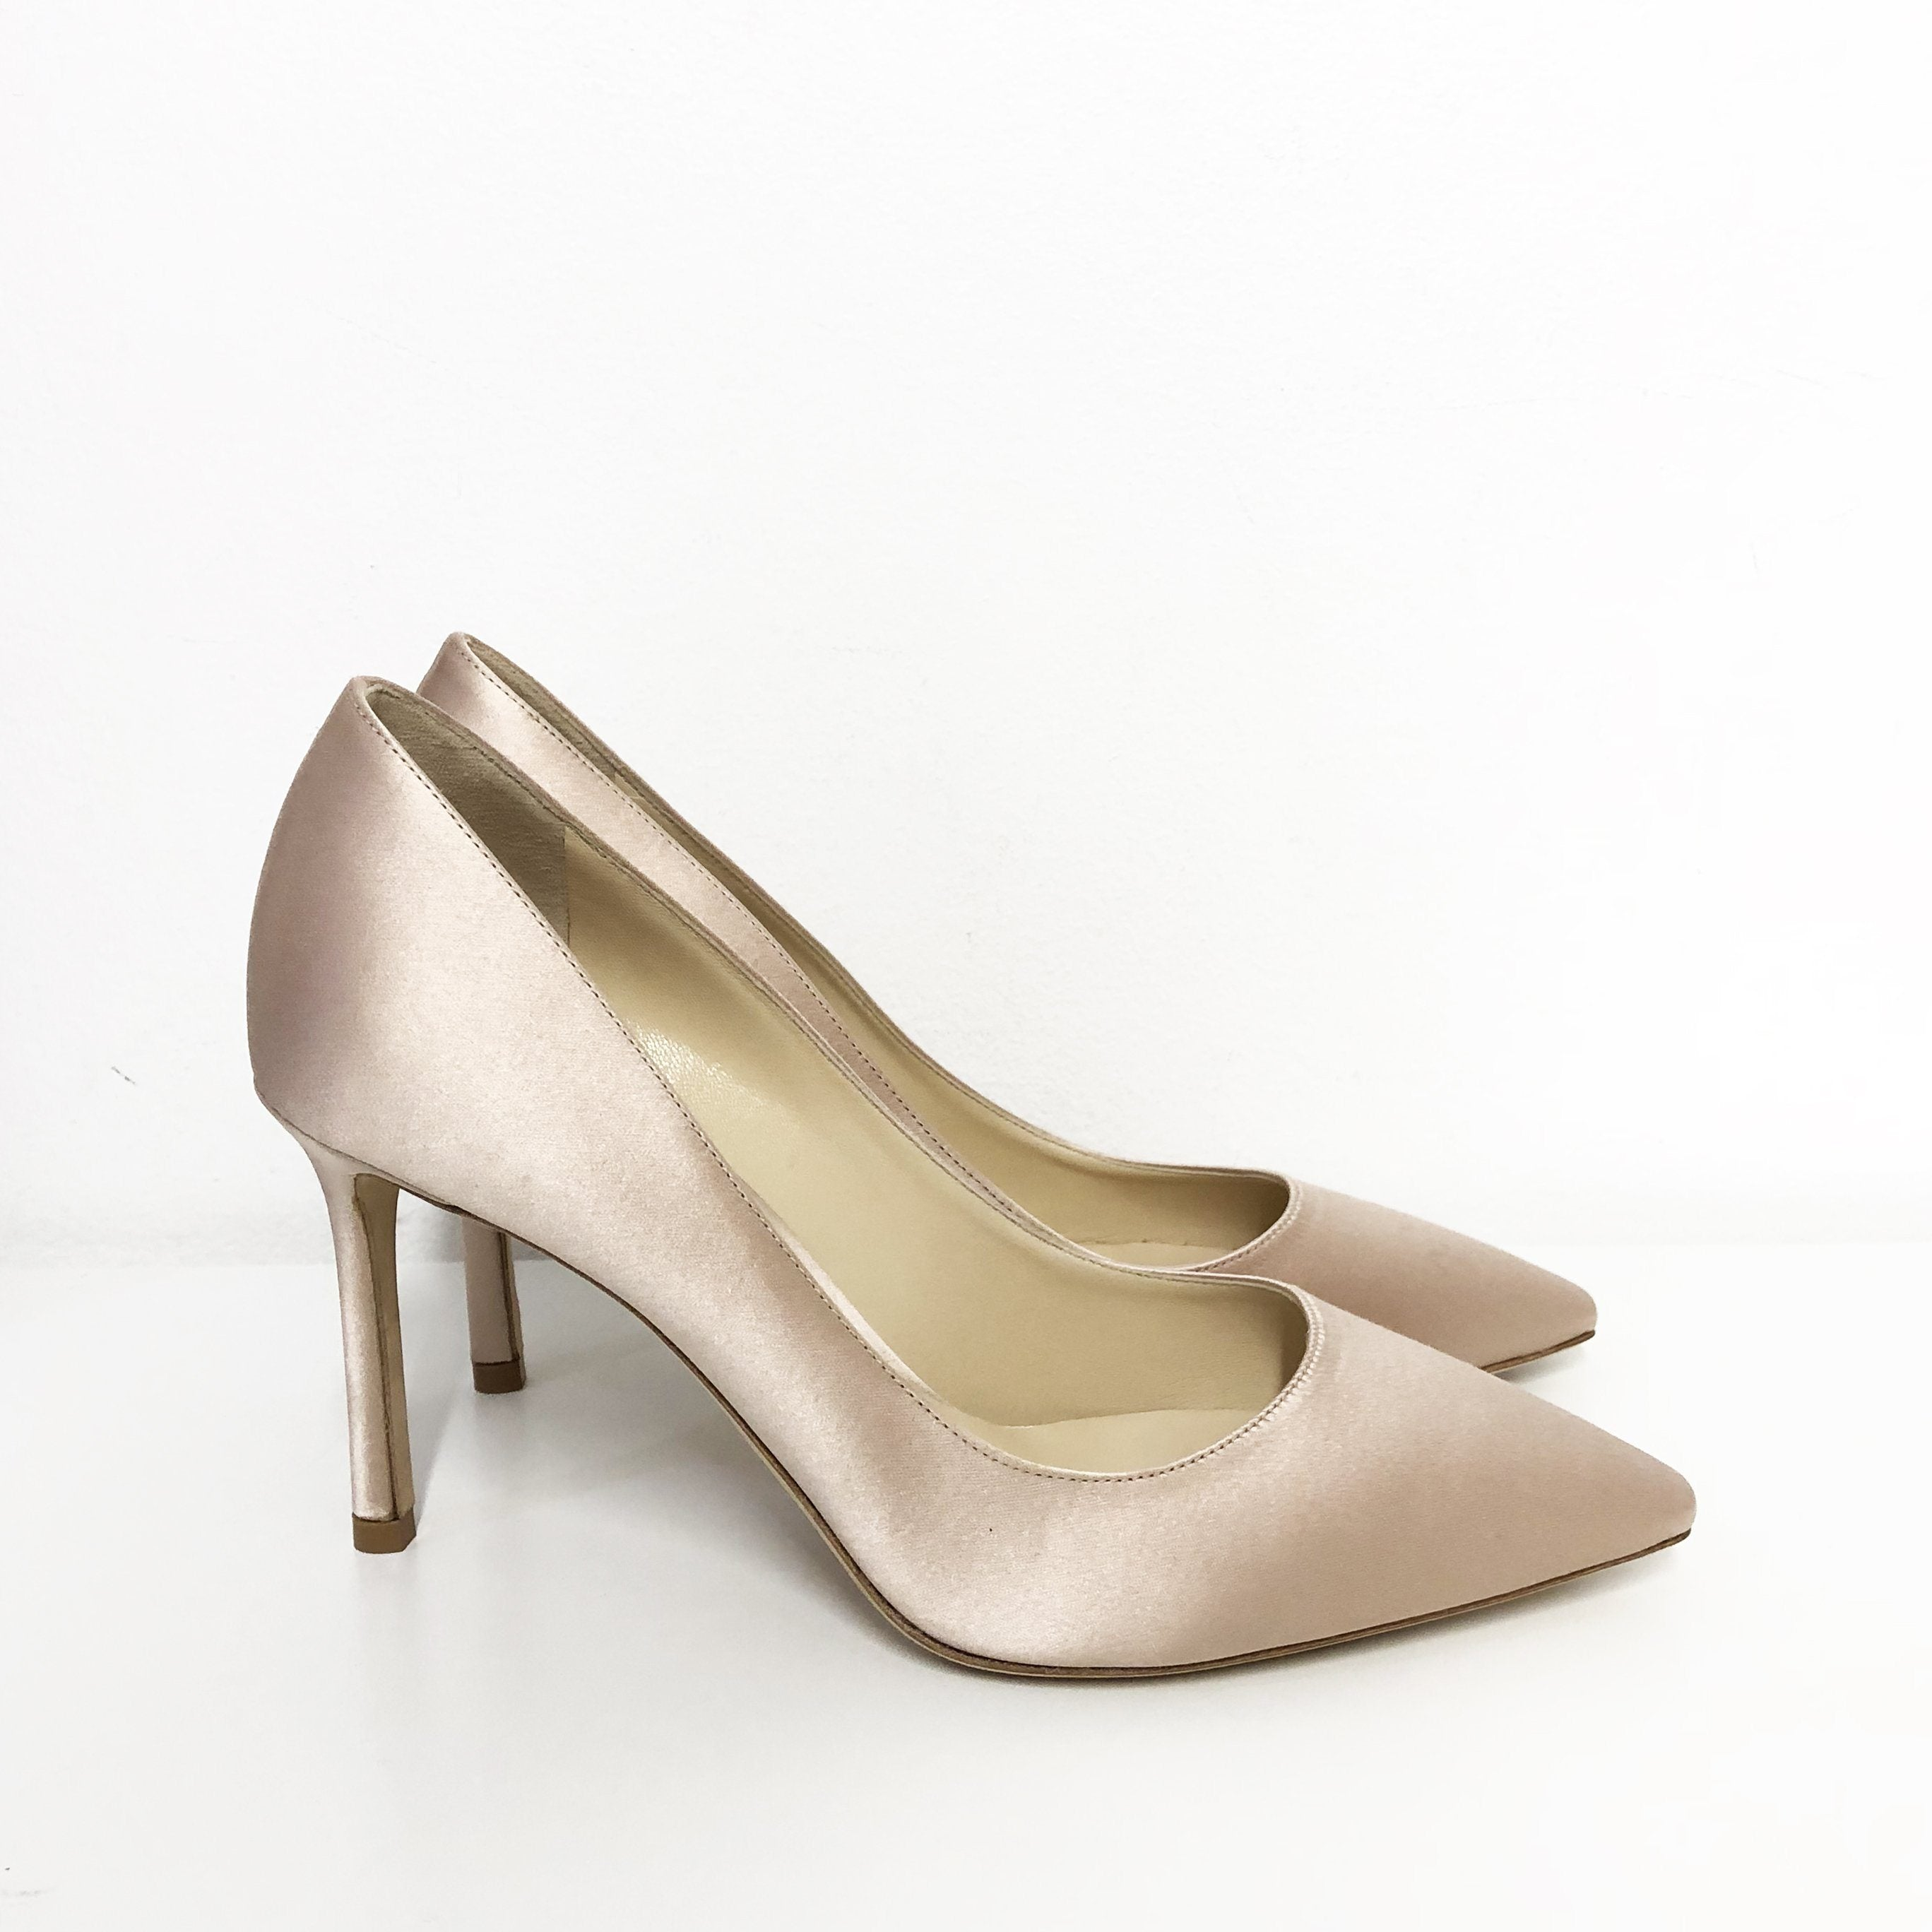 58a5a3b46edd Jimmy Choo Romy 85 Dusty Rose Satin Pointy Toe Pumps – Garderobe